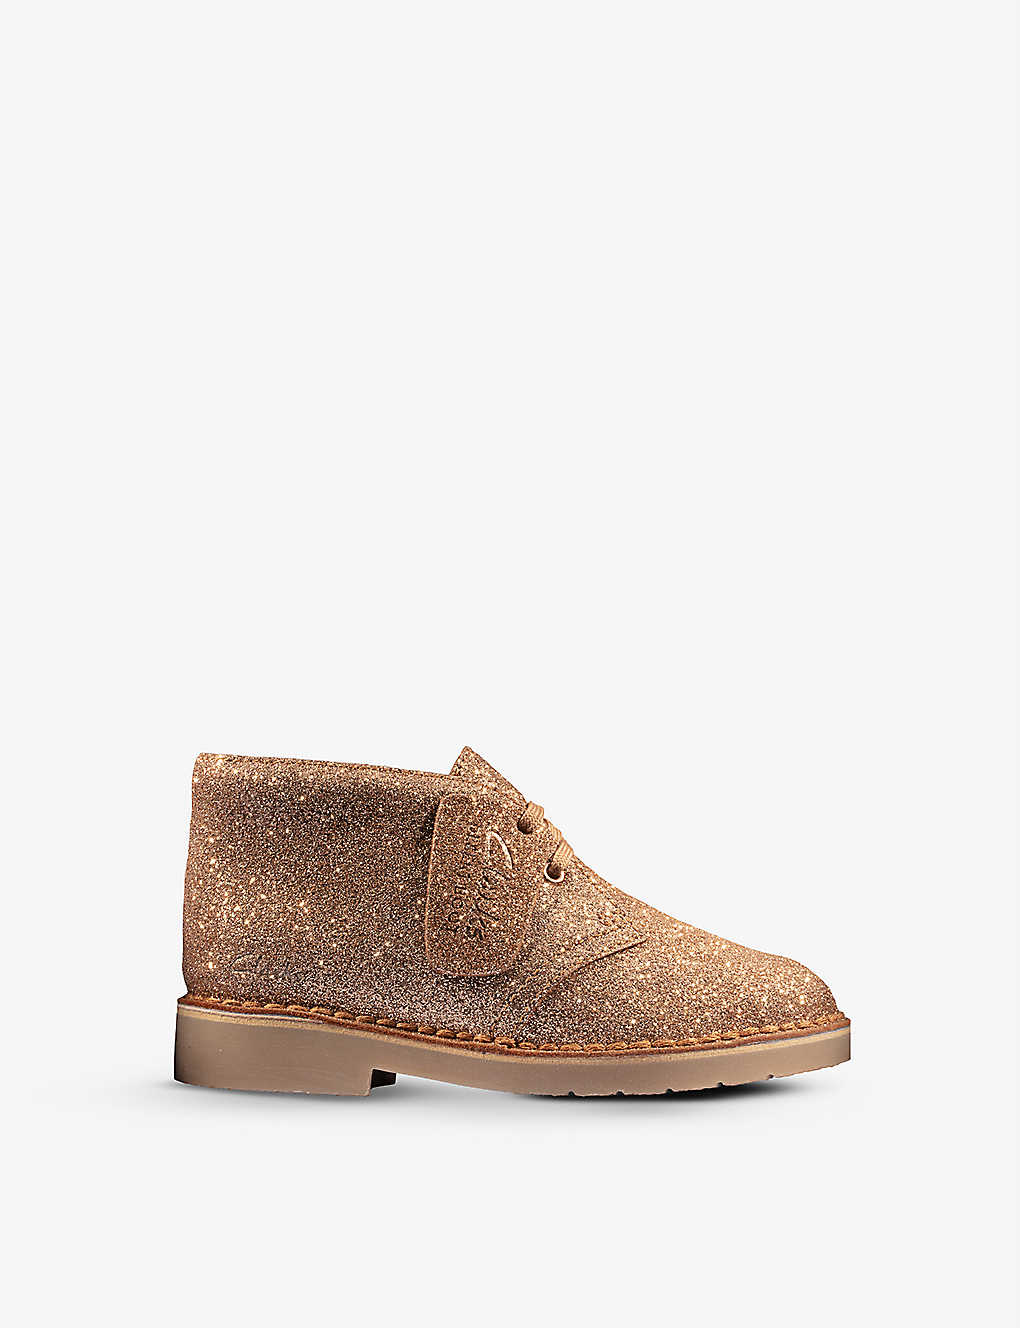 CLARKS: Desert Boot 2 glitter leather boots 5-8 years